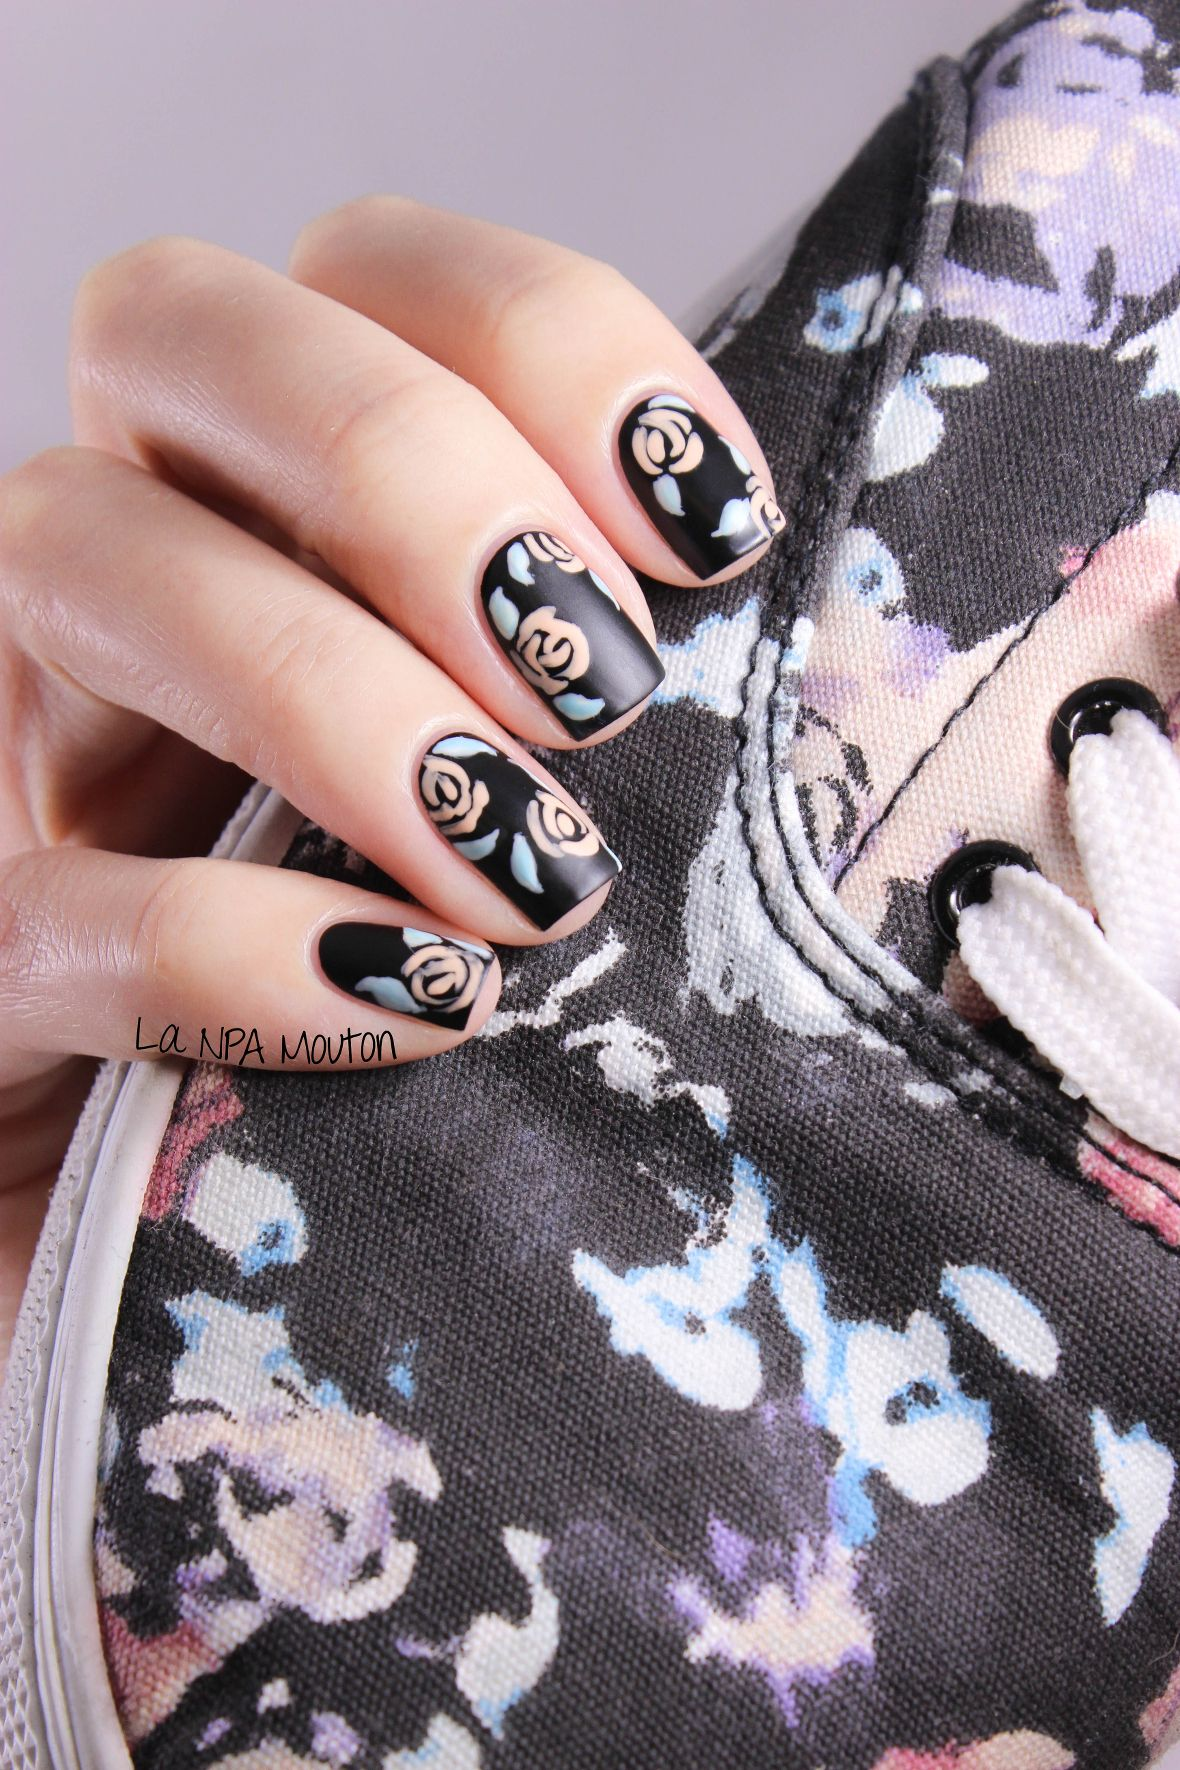 Nailstorming x Sneakers Inspired Nails - Vintage Roses 2